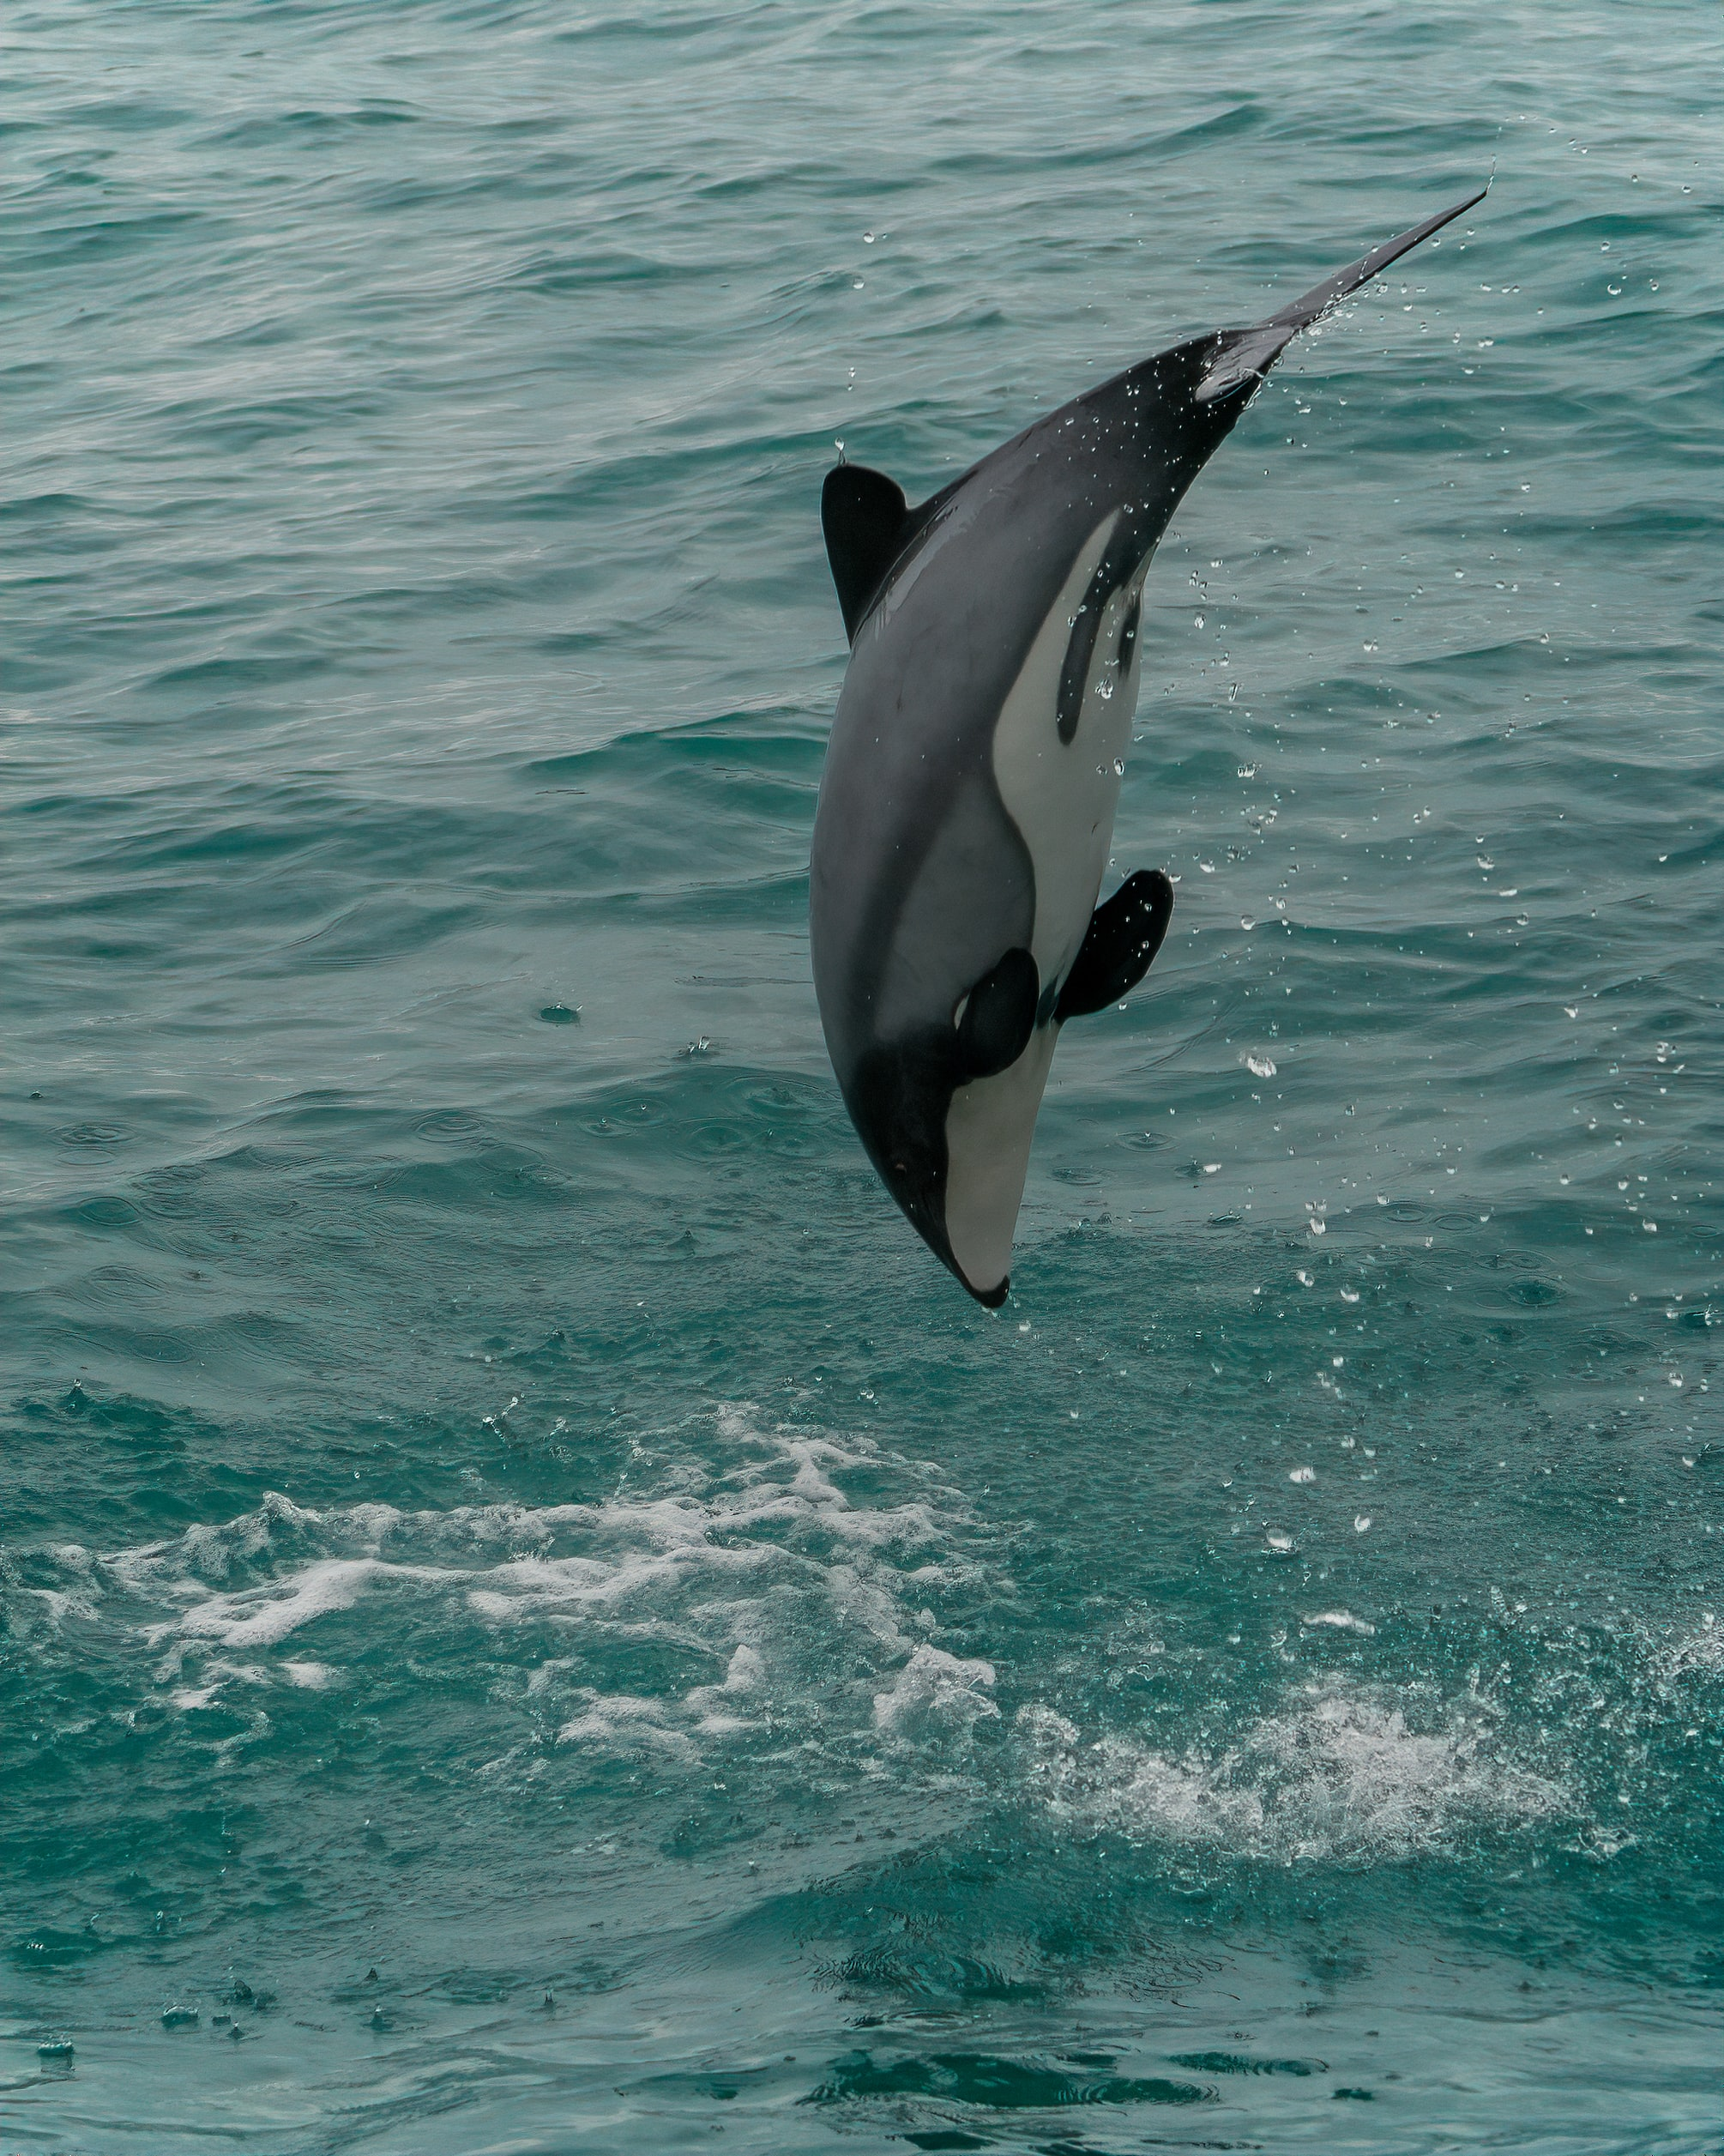 99117 download wallpaper Animals, White-Faced Dolphin, Dolphin, Animal, Splash screensavers and pictures for free